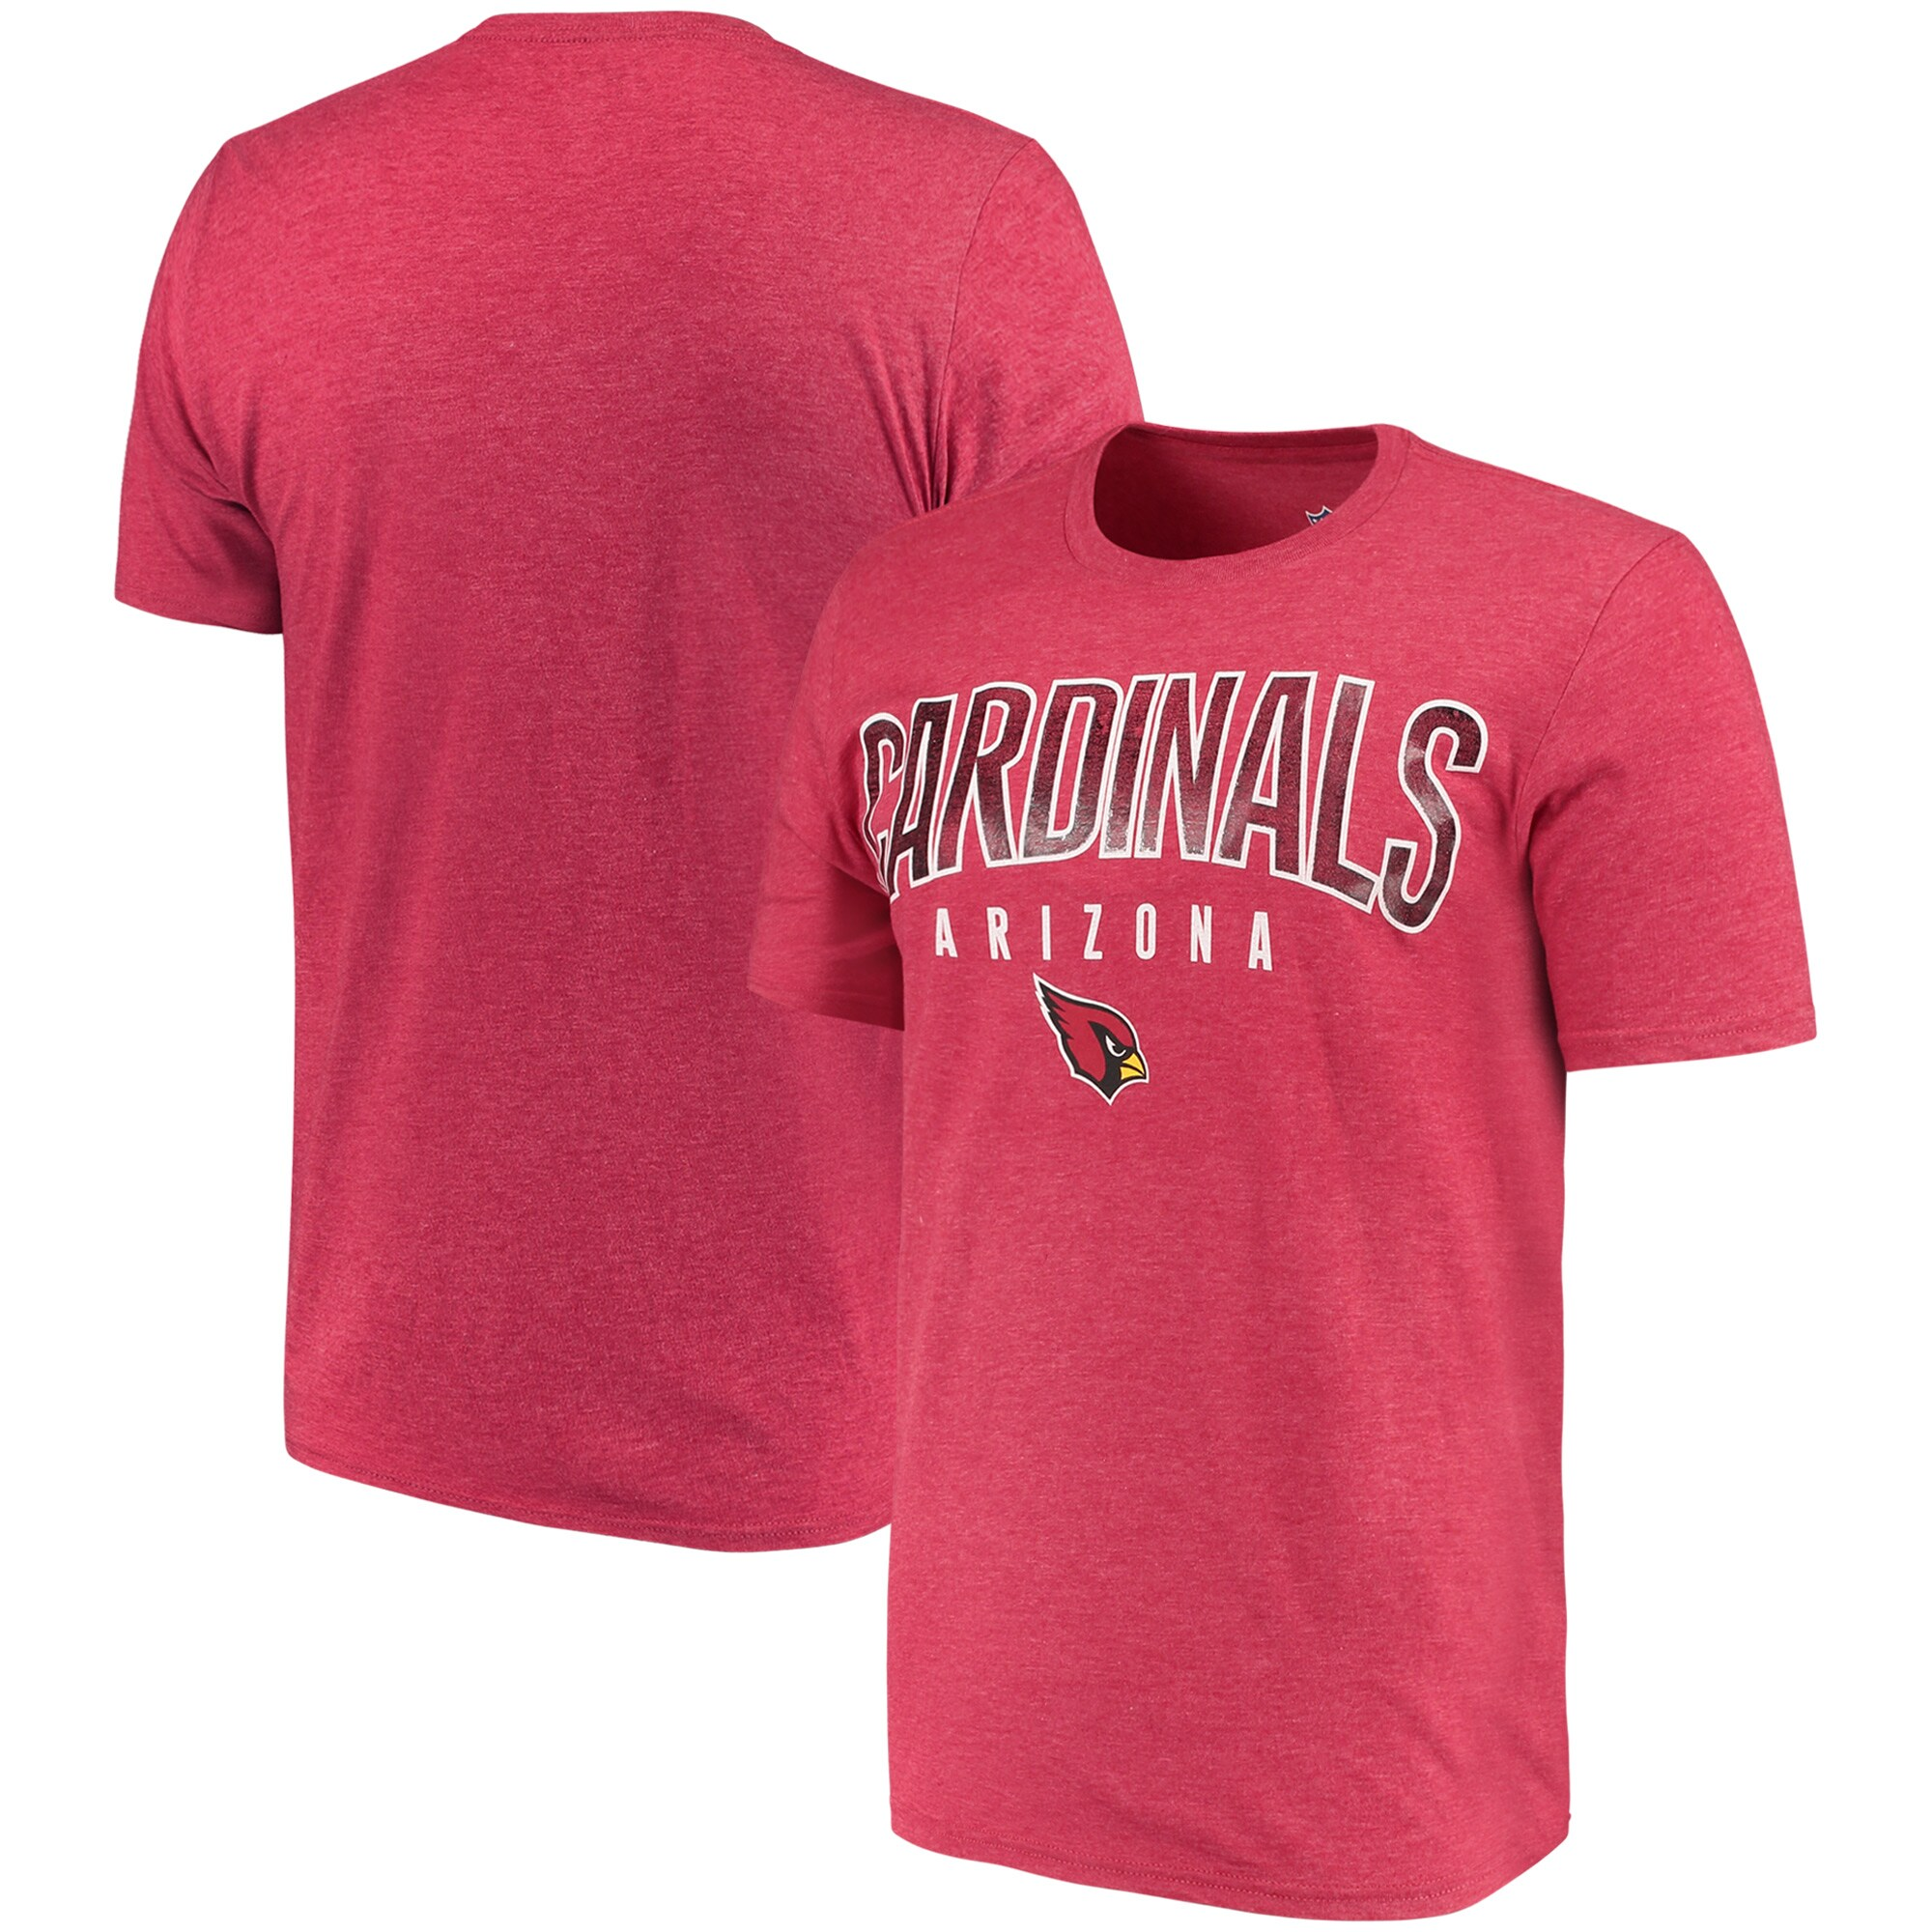 Arizona Cardinals G-III Sports by Carl Banks Prime Time Tri-Blend T-Shirt - Cardinal